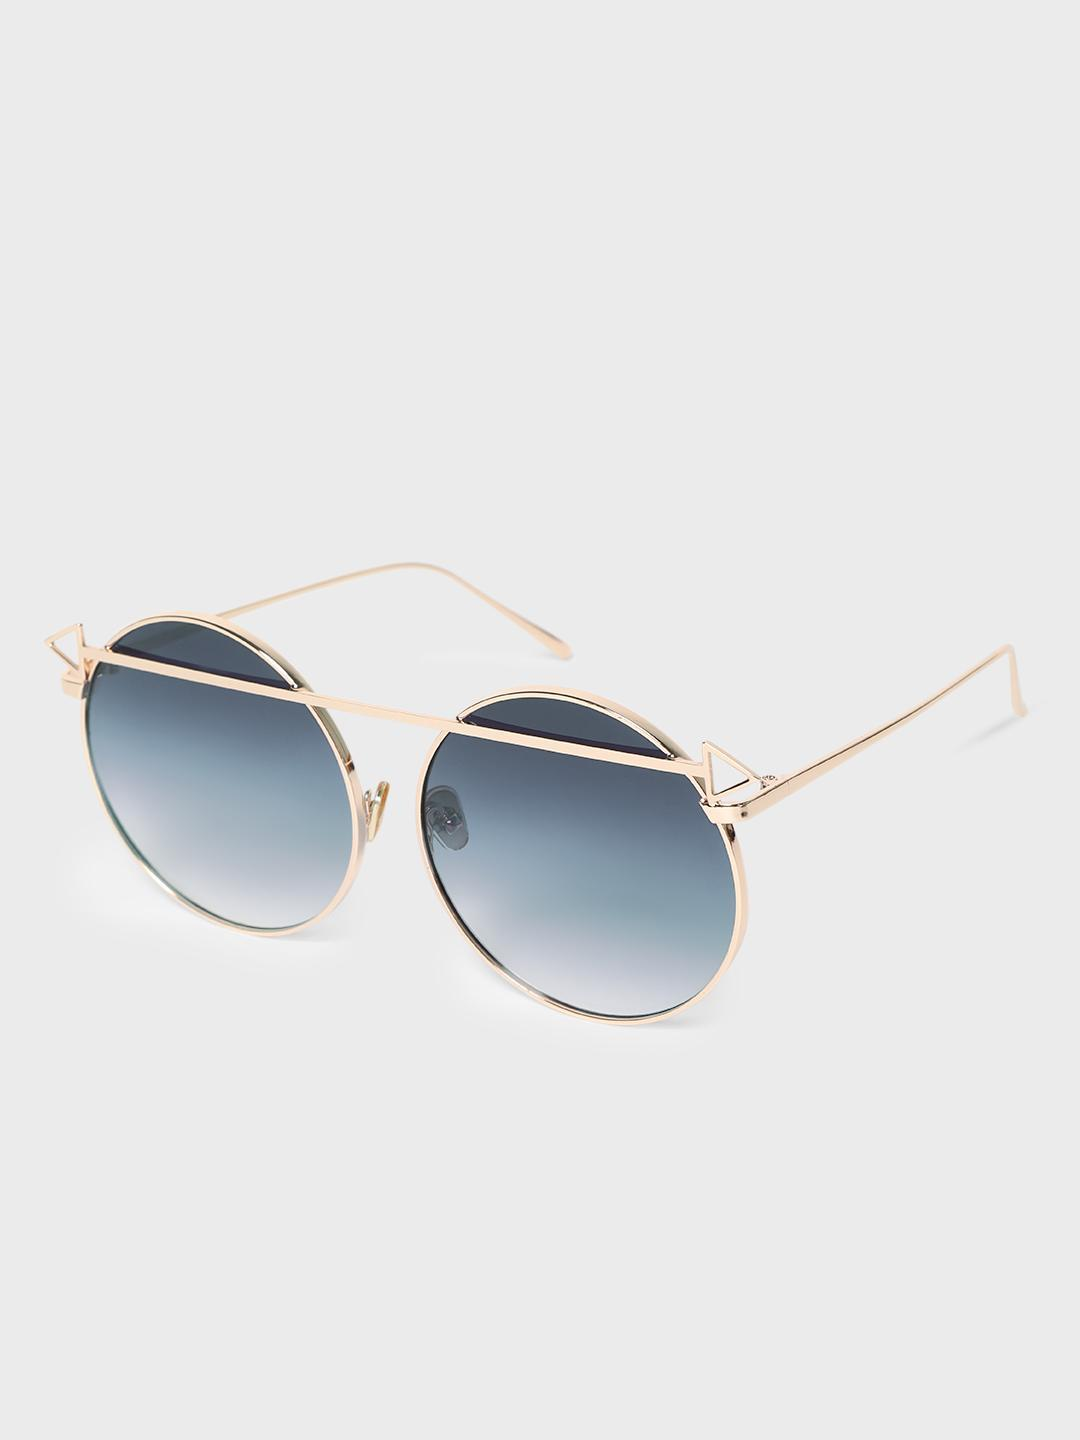 KOOVS Multi Metal Brow Bar Round Sunglasses 1